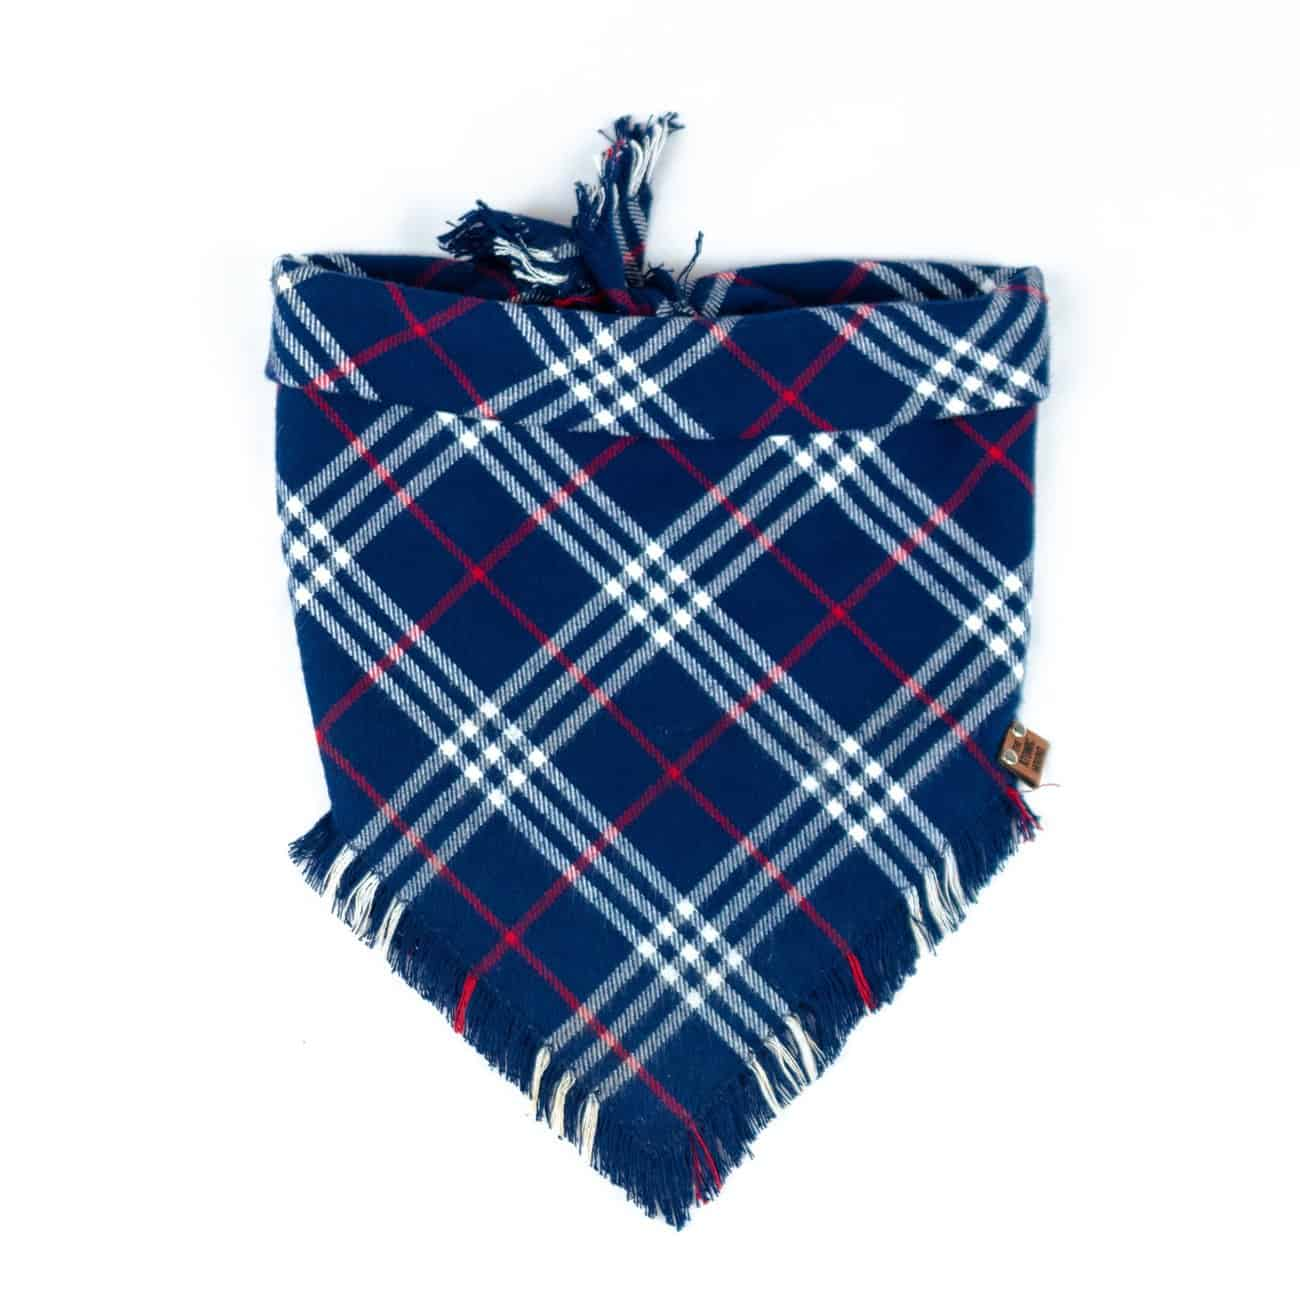 Blue, red and white frayed dog bandana